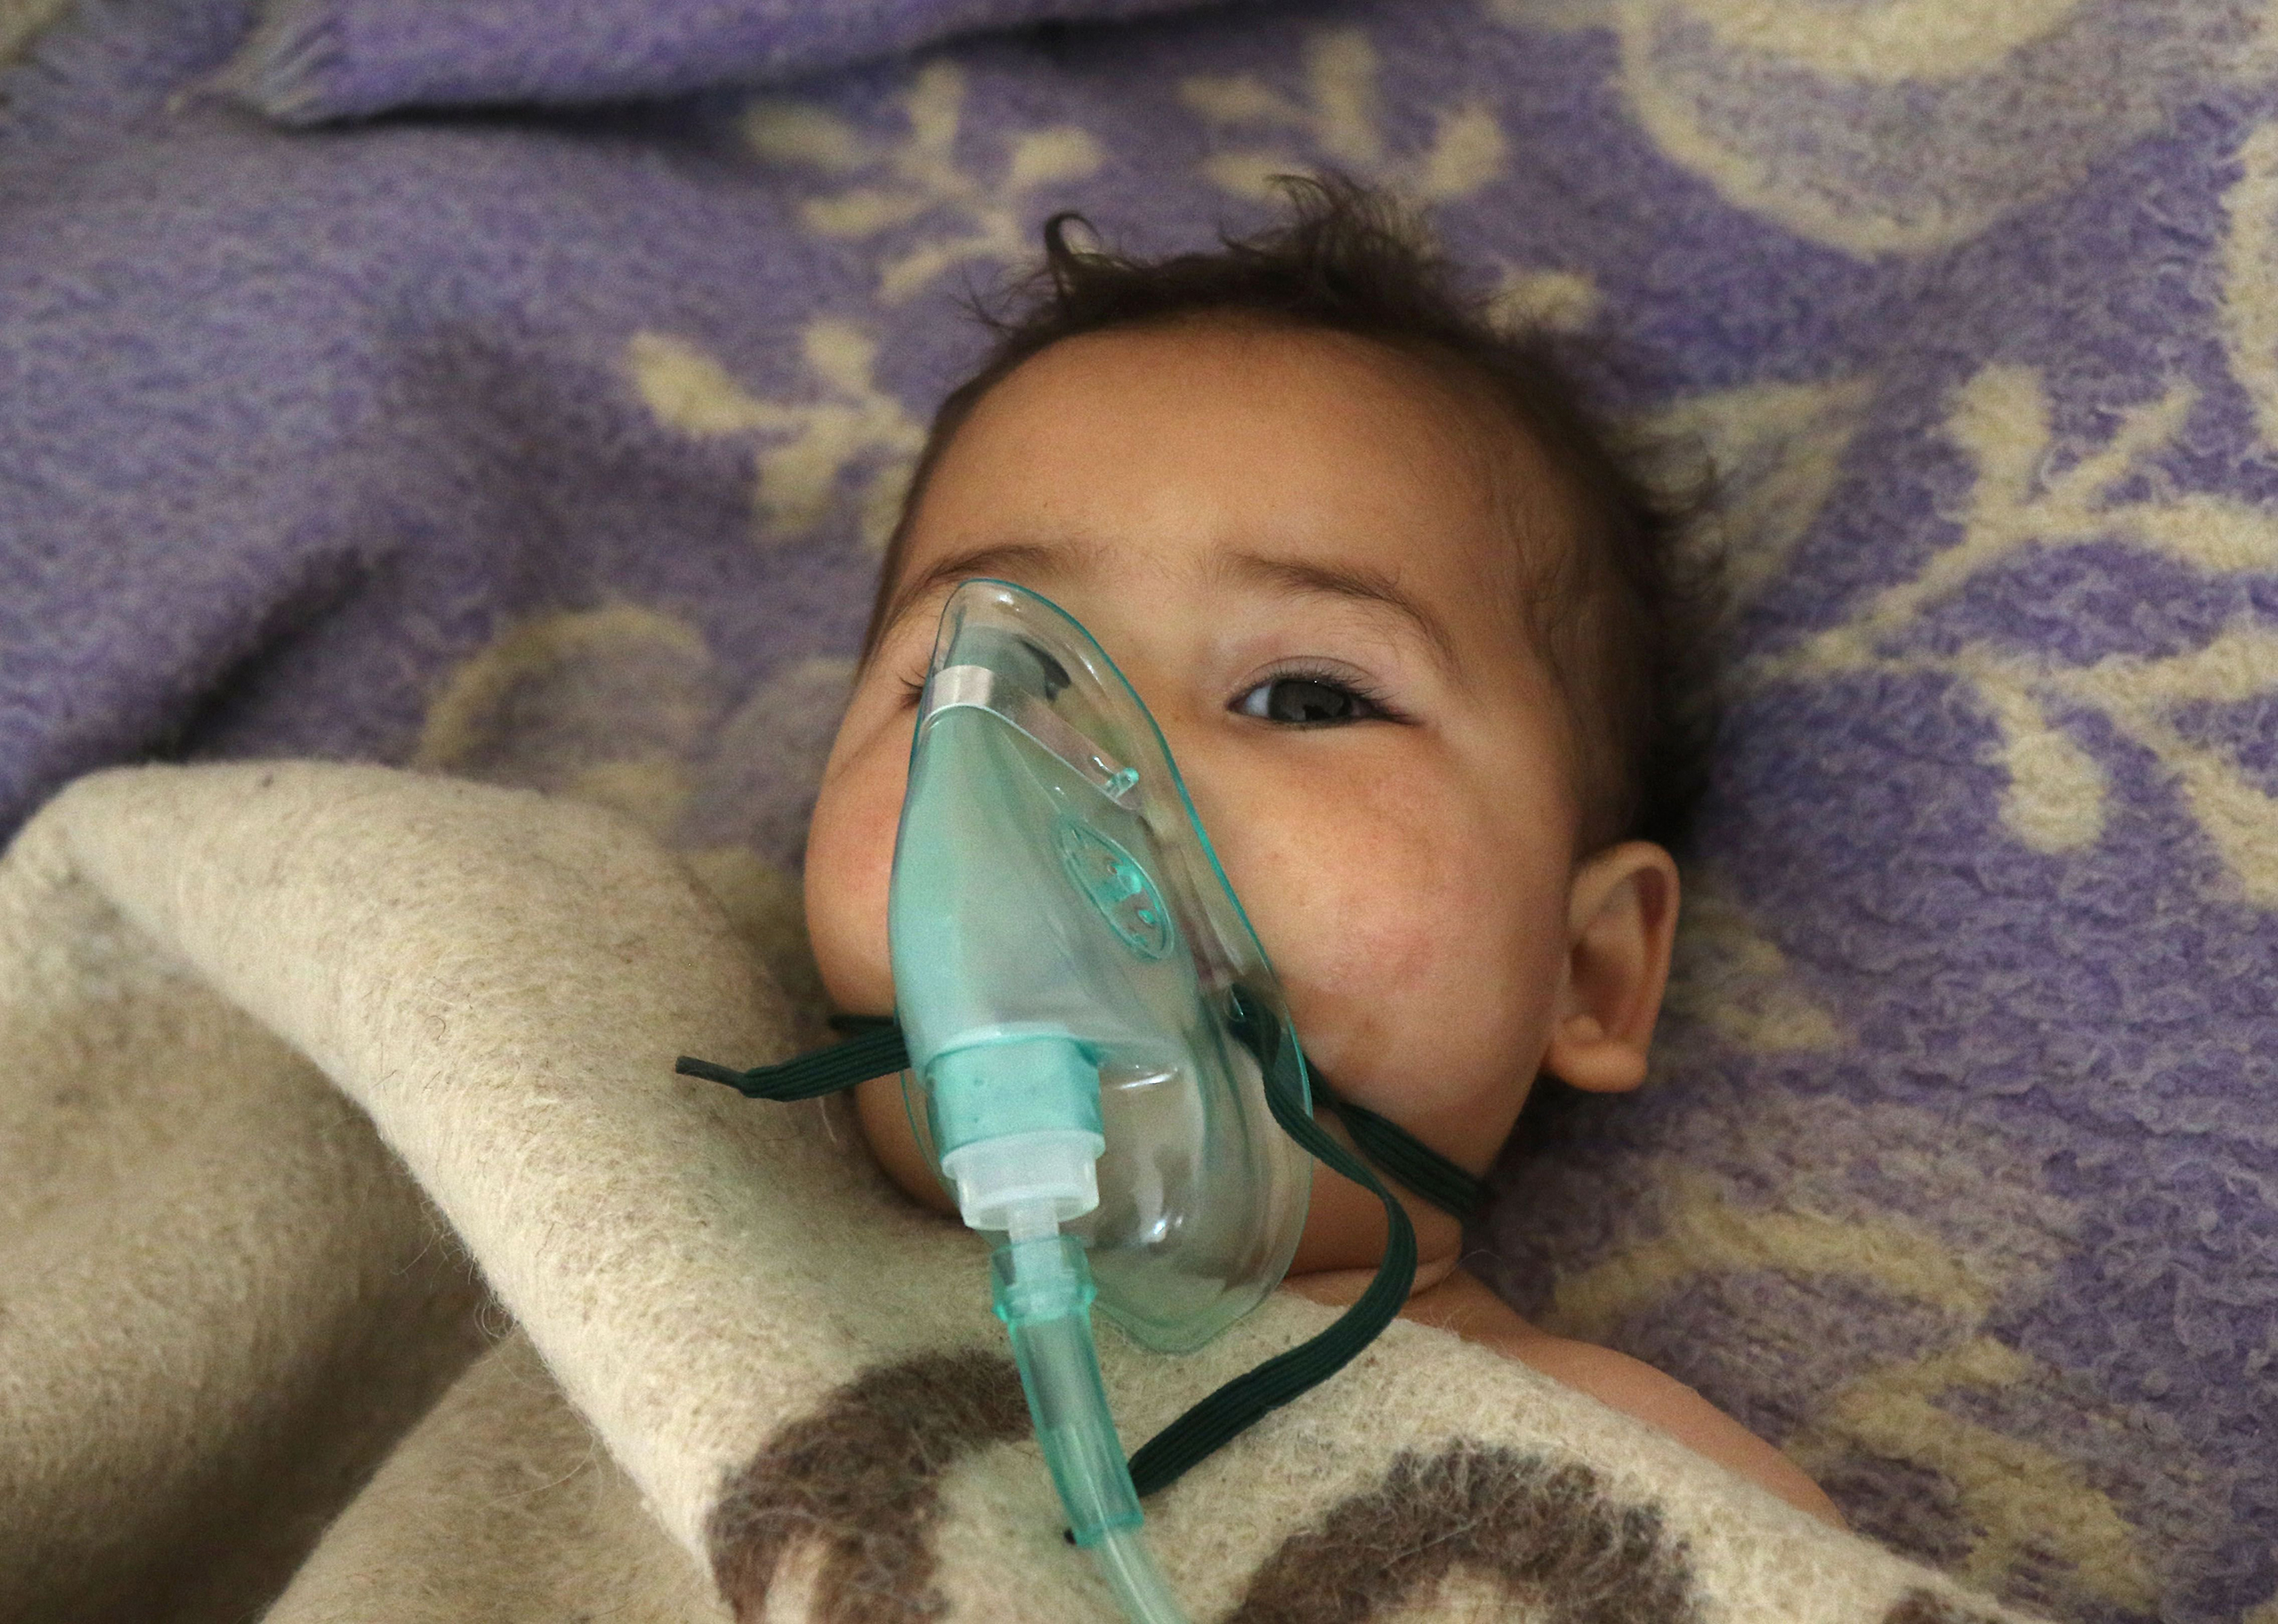 A Syrian child receives treatment after a suspected gas attack at a small hospital in Maaret al-Noman, a rebel-held town in Idlib province, on April 4, 2017.